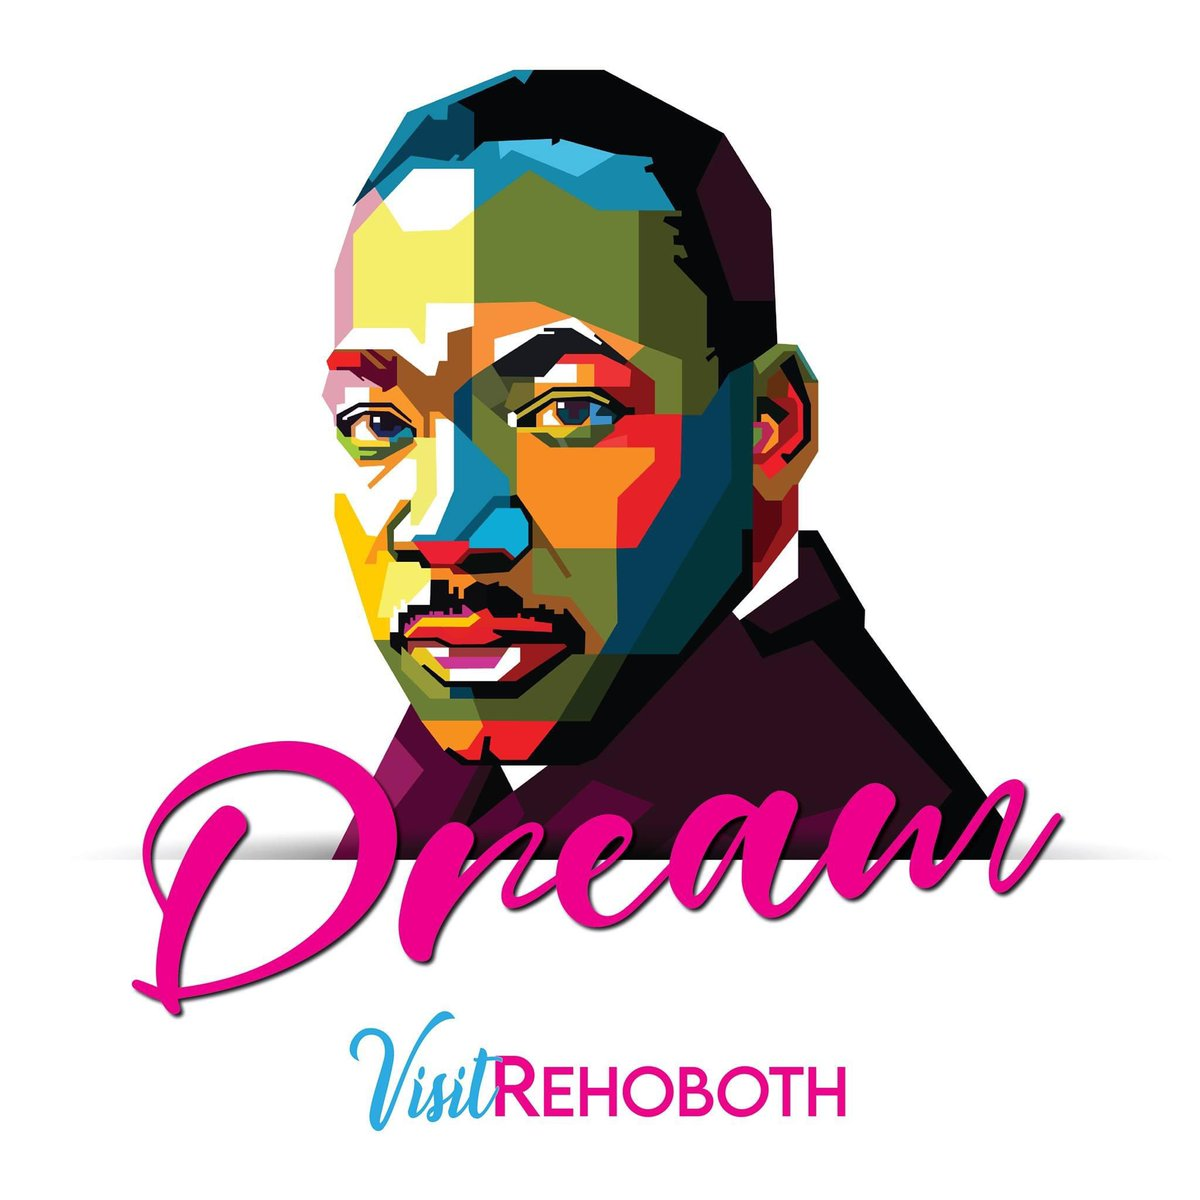 Dream ✨   #visitrehoboth #visitlewes #MartinLutherKing #MartinLutherKingJr #MartinLutherKingJrDay #IHaveADream #dream #love #inthistogether #community #voice #friends #family #mondaymotivation #supportoneanother #delaware #nevergiveup